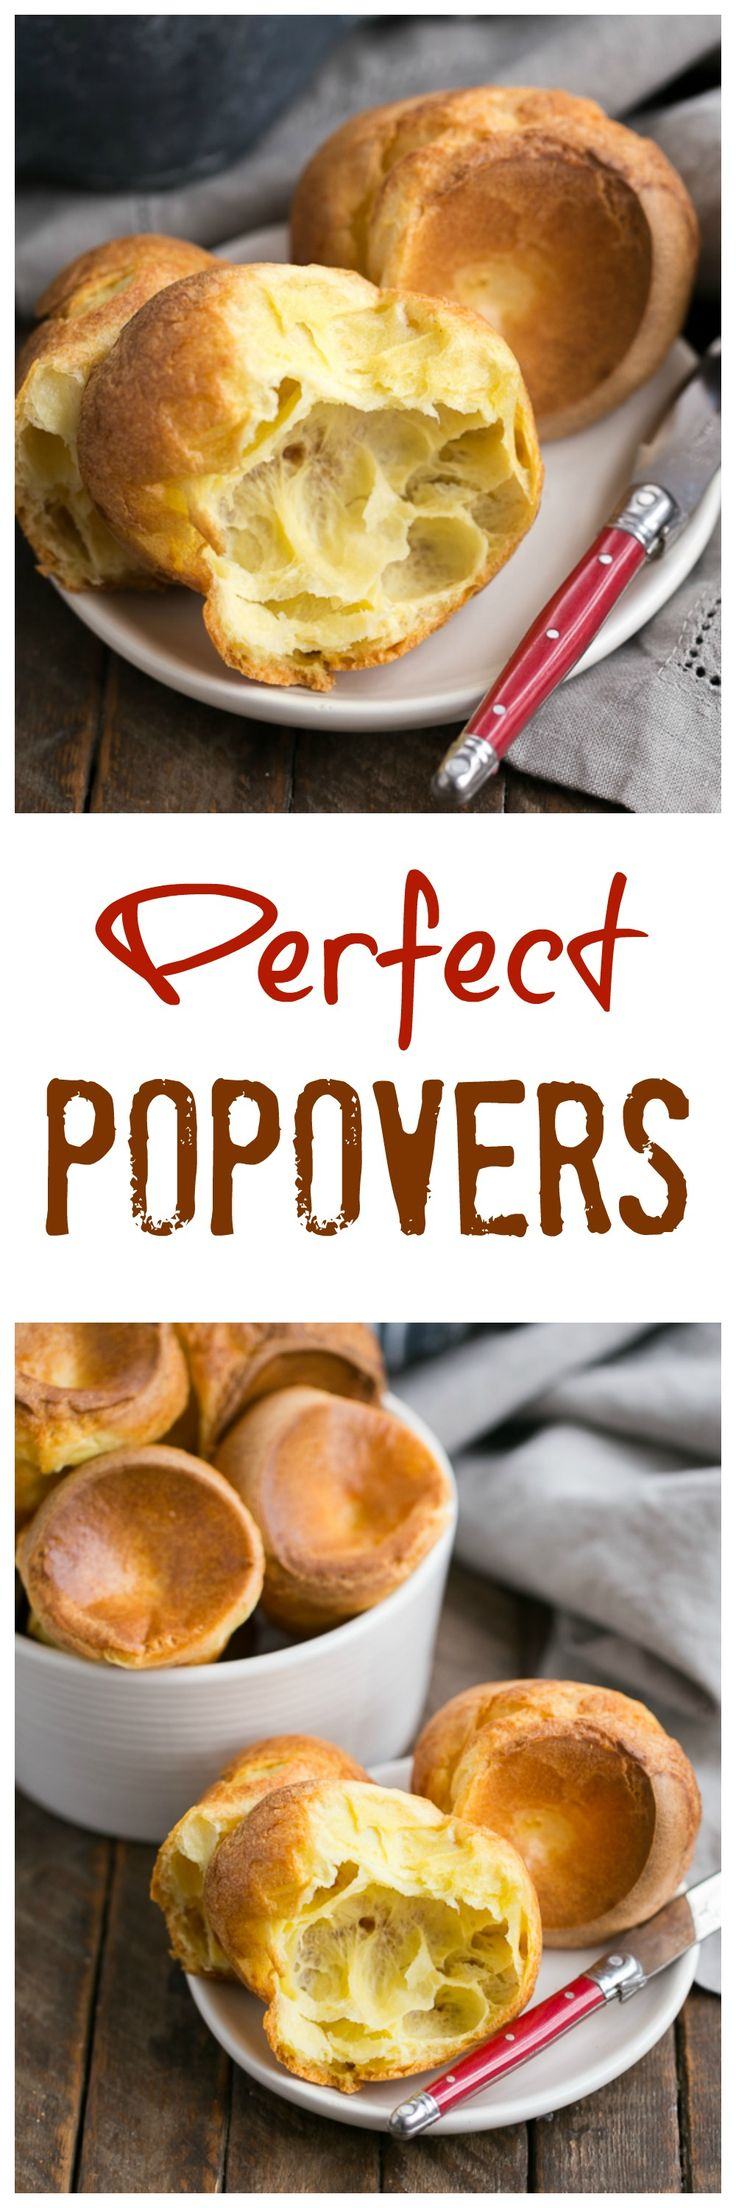 Perfect Popovers from Dorie Greenspan @lizzydo